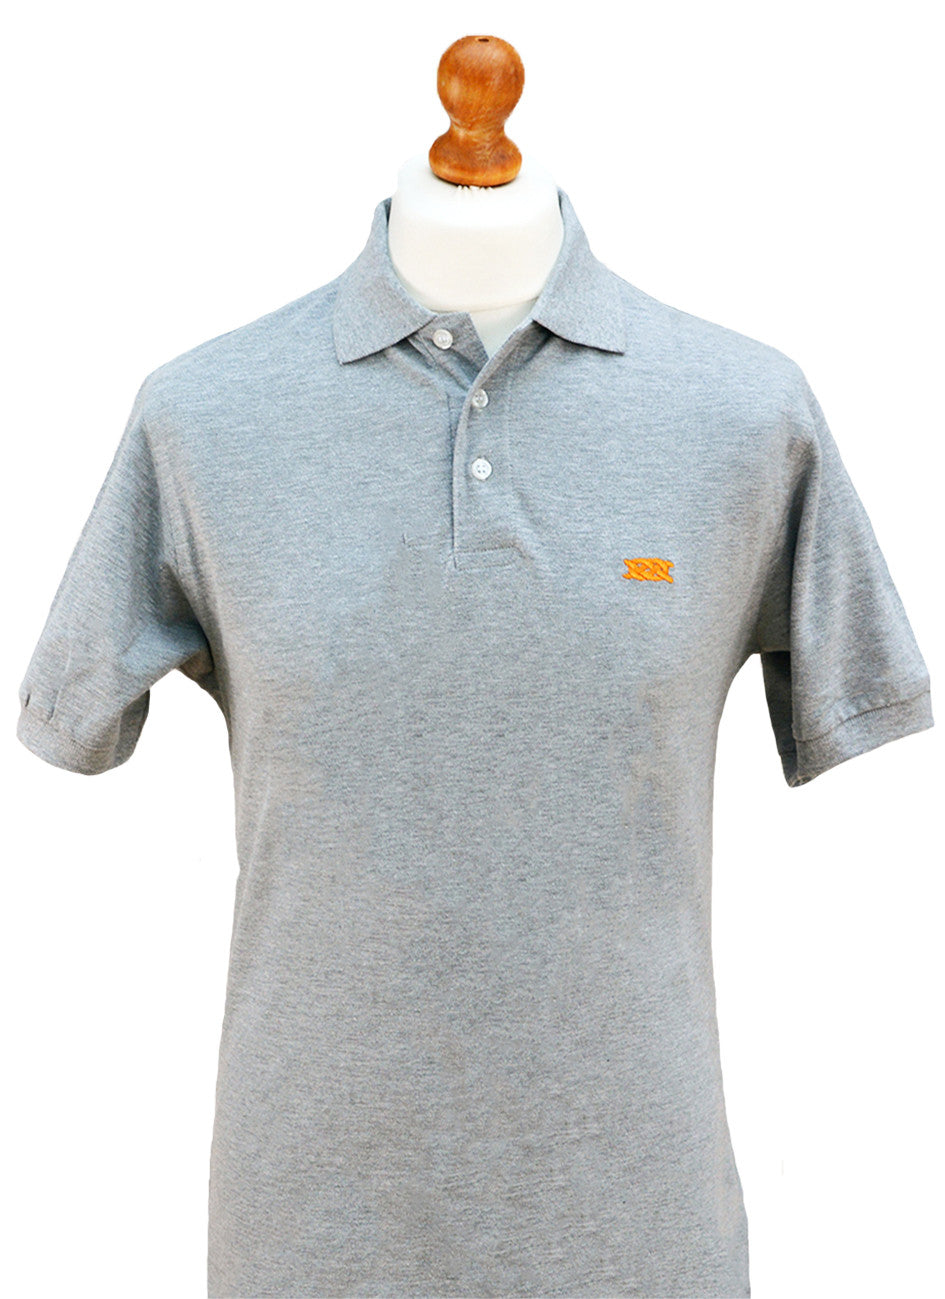 327423e74 Southern Marine's Men's Pique Cotton Polo Shirt - The Norm ON SALE -  Southern Marine